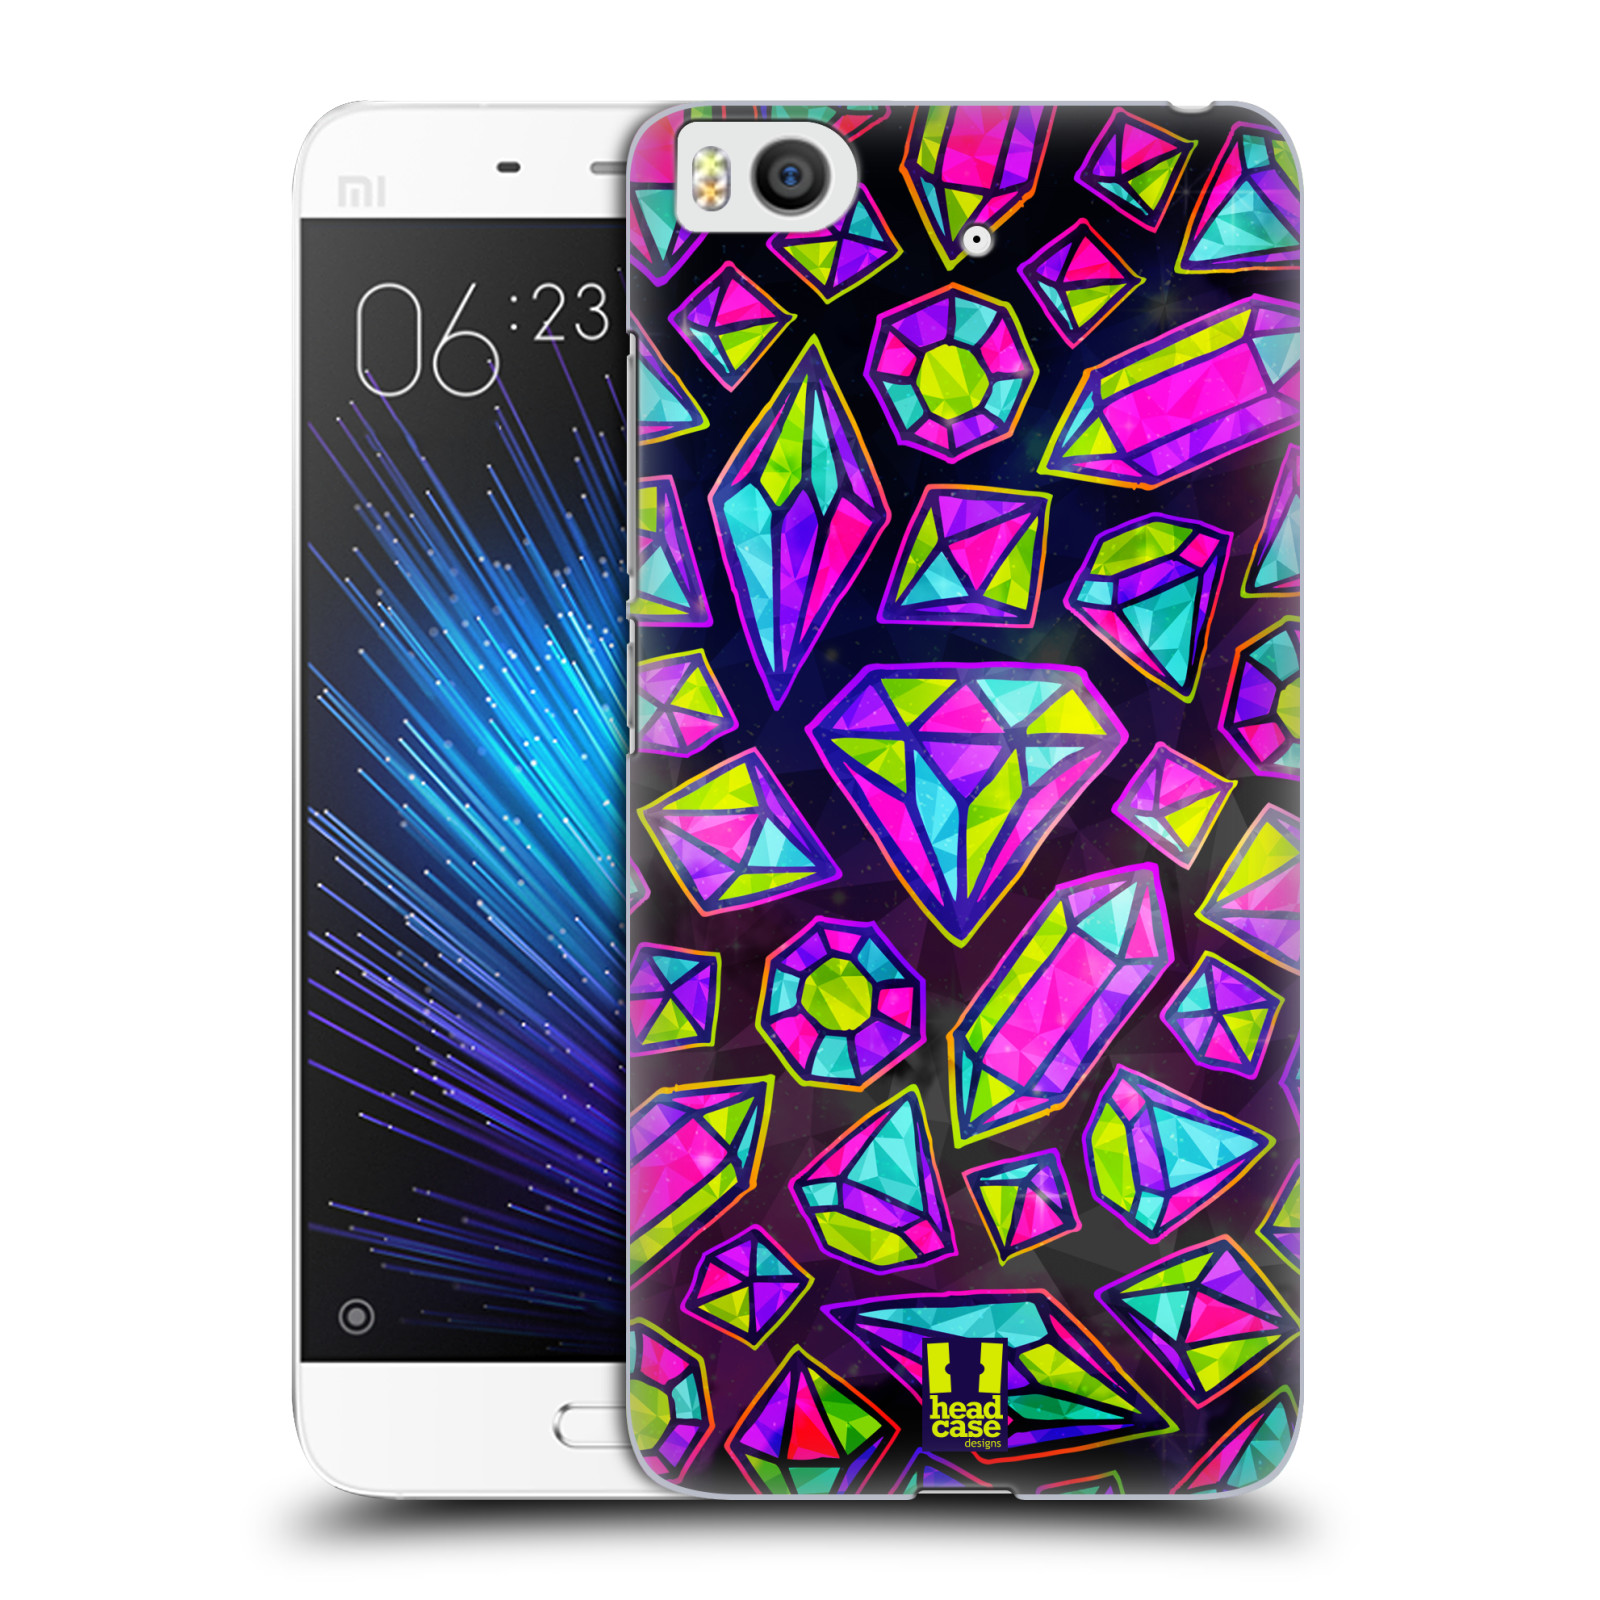 HEAD-CASE-DESIGNS-VIVID-PRINTED-JEWELS-HARD-BACK-CASE-FOR-XIAOMI-Mi-5s